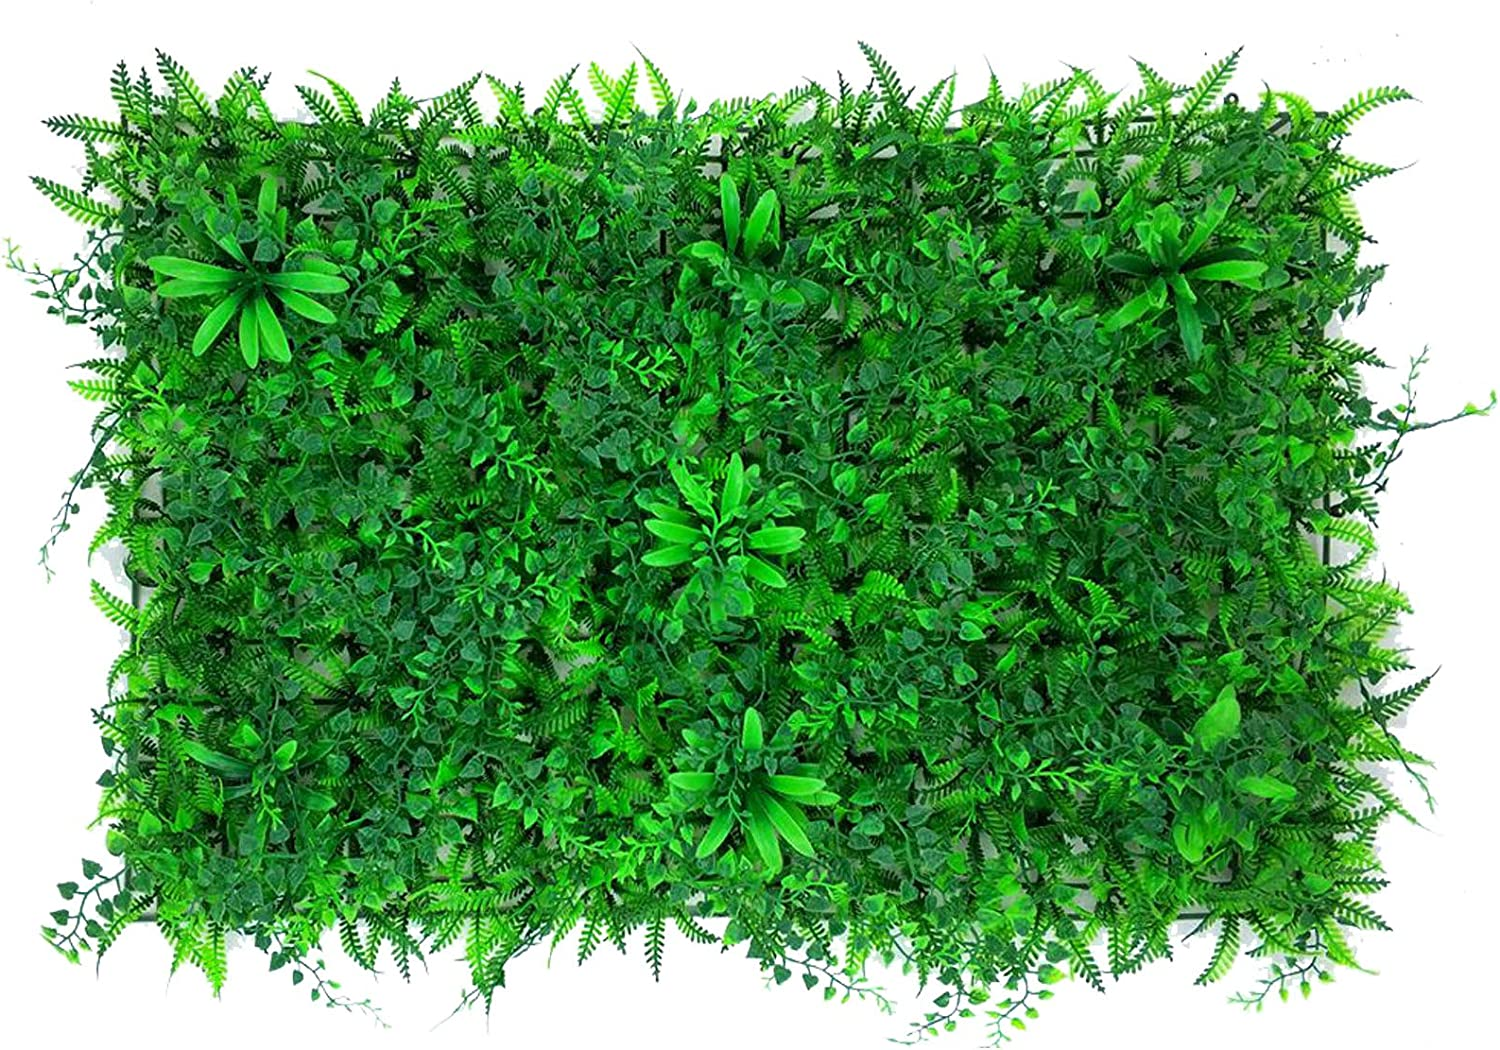 Cheap mail order sales LXYLY 23.6 X 15.7 Inch Artificial Panels UV Wall Plant Free shipping on posting reviews Flowers P